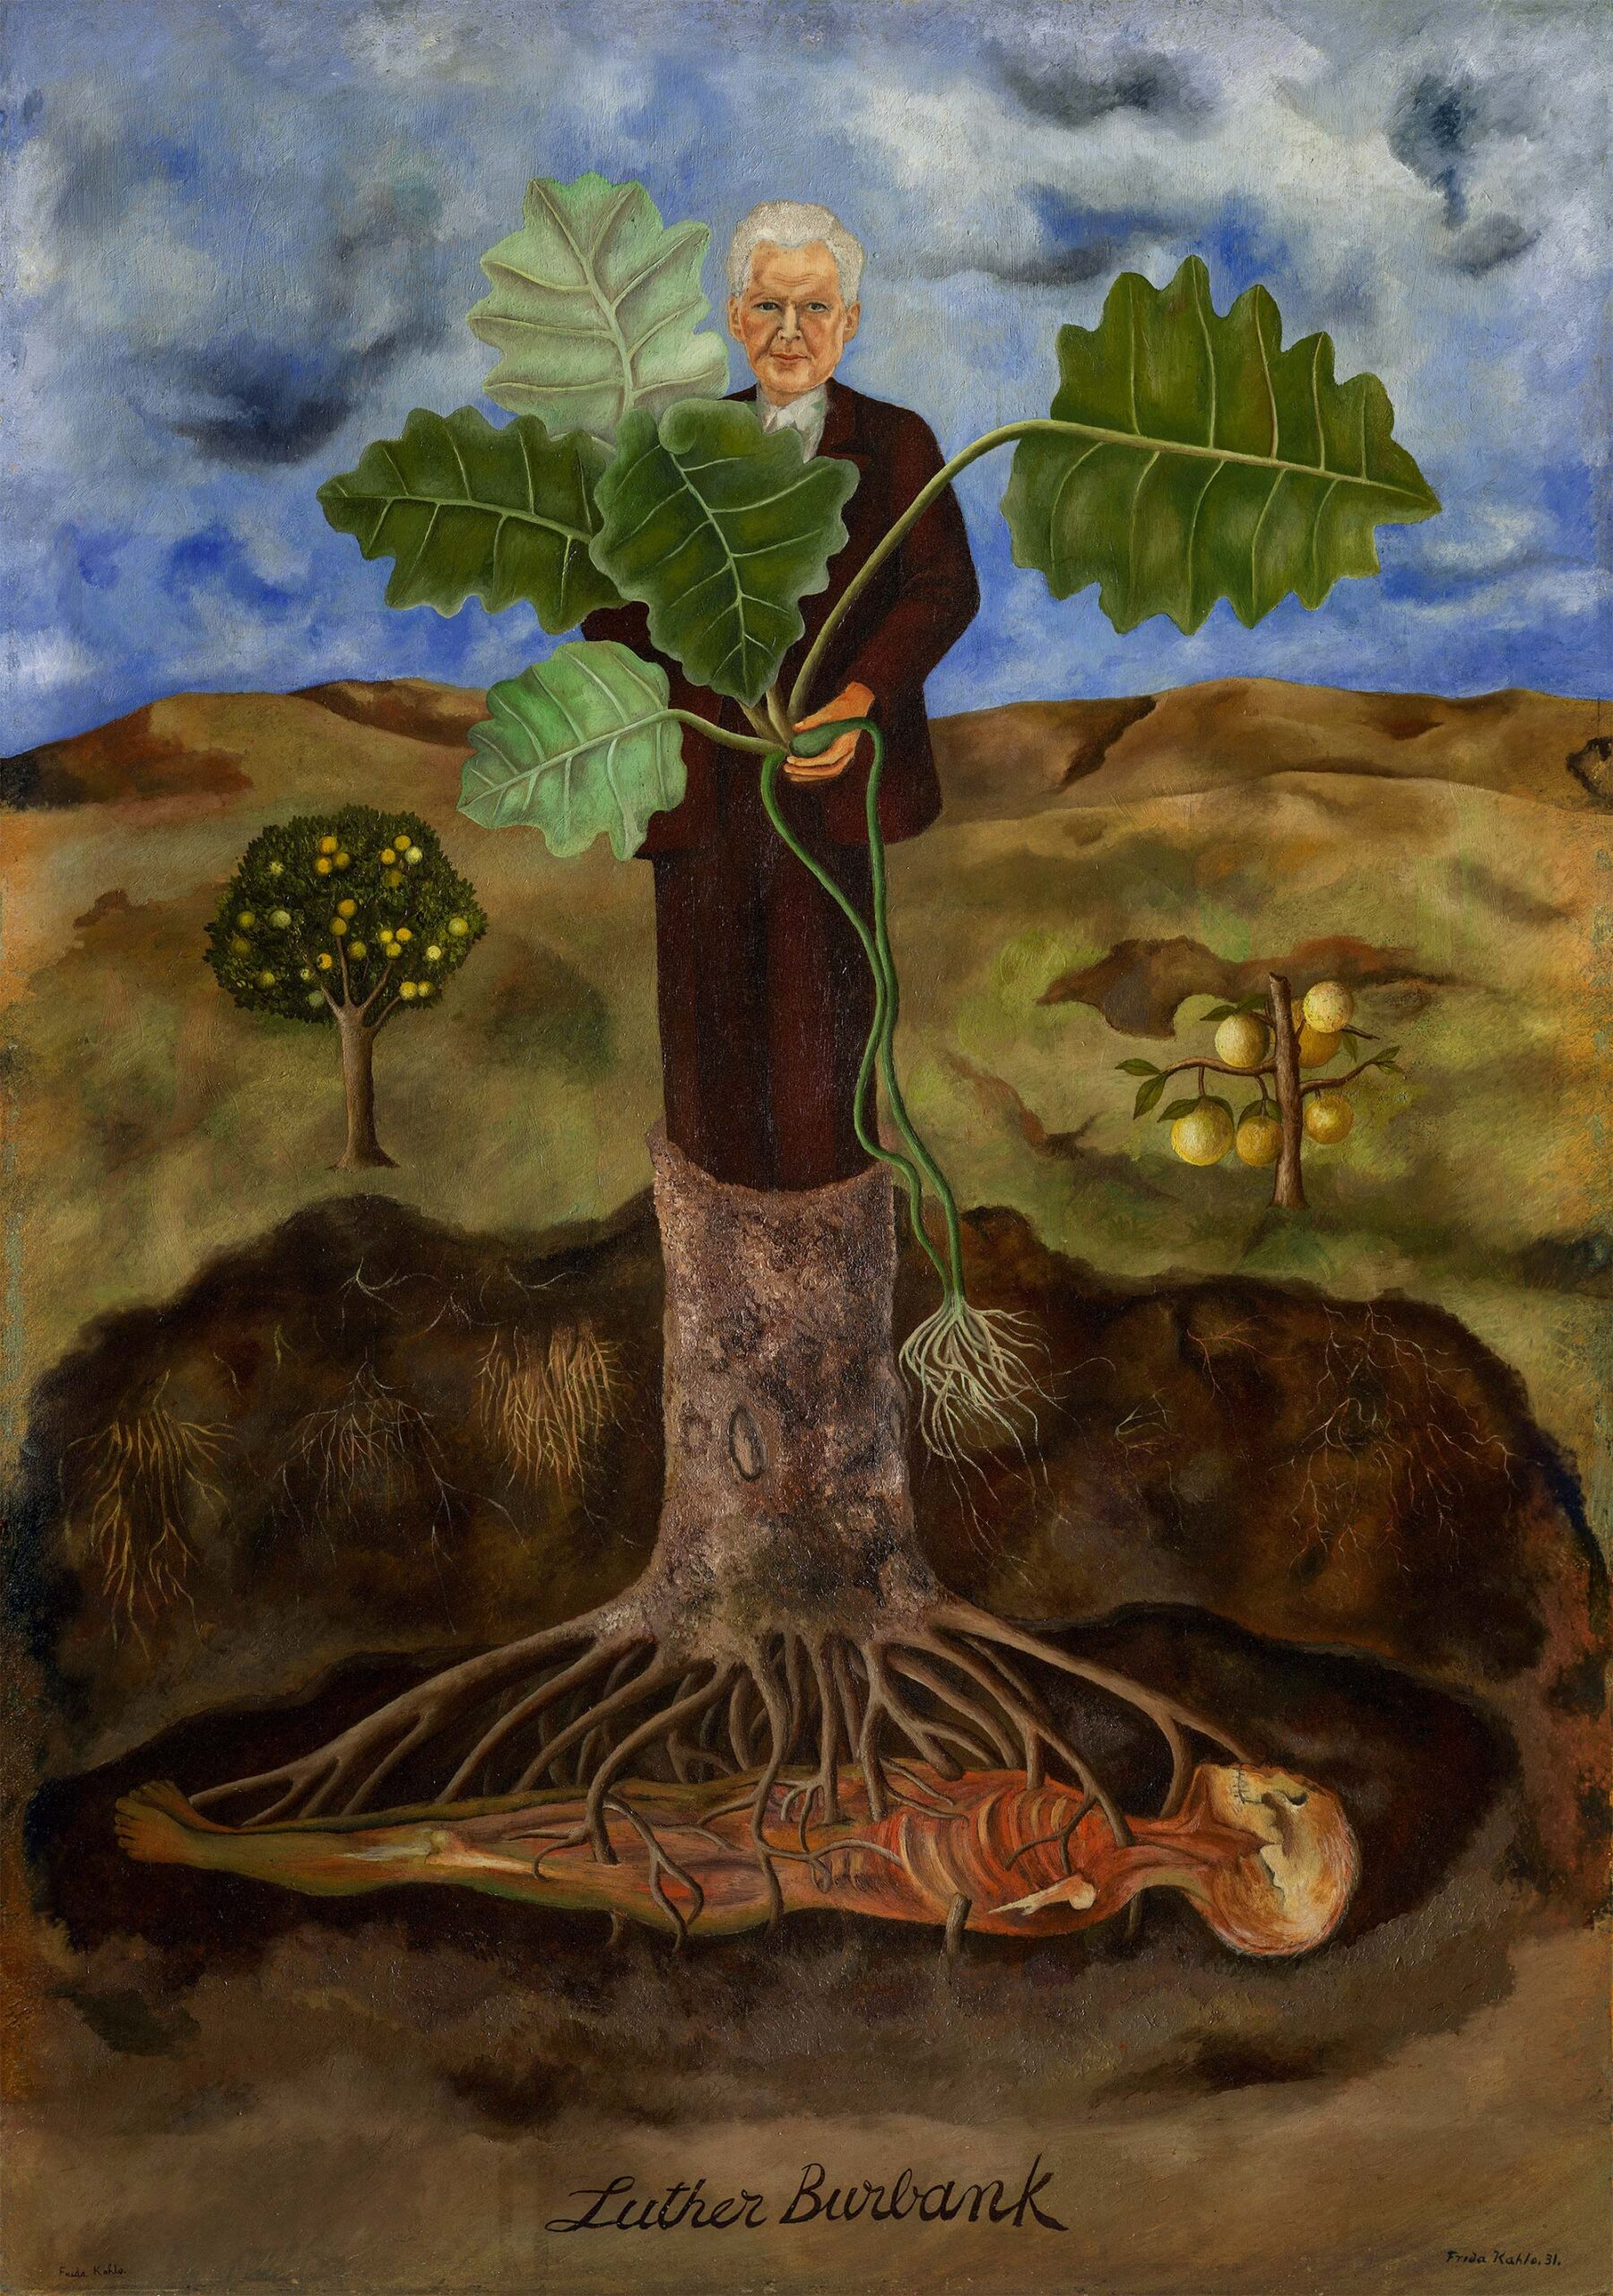 kahlo libro Portrait of Luther Burbank